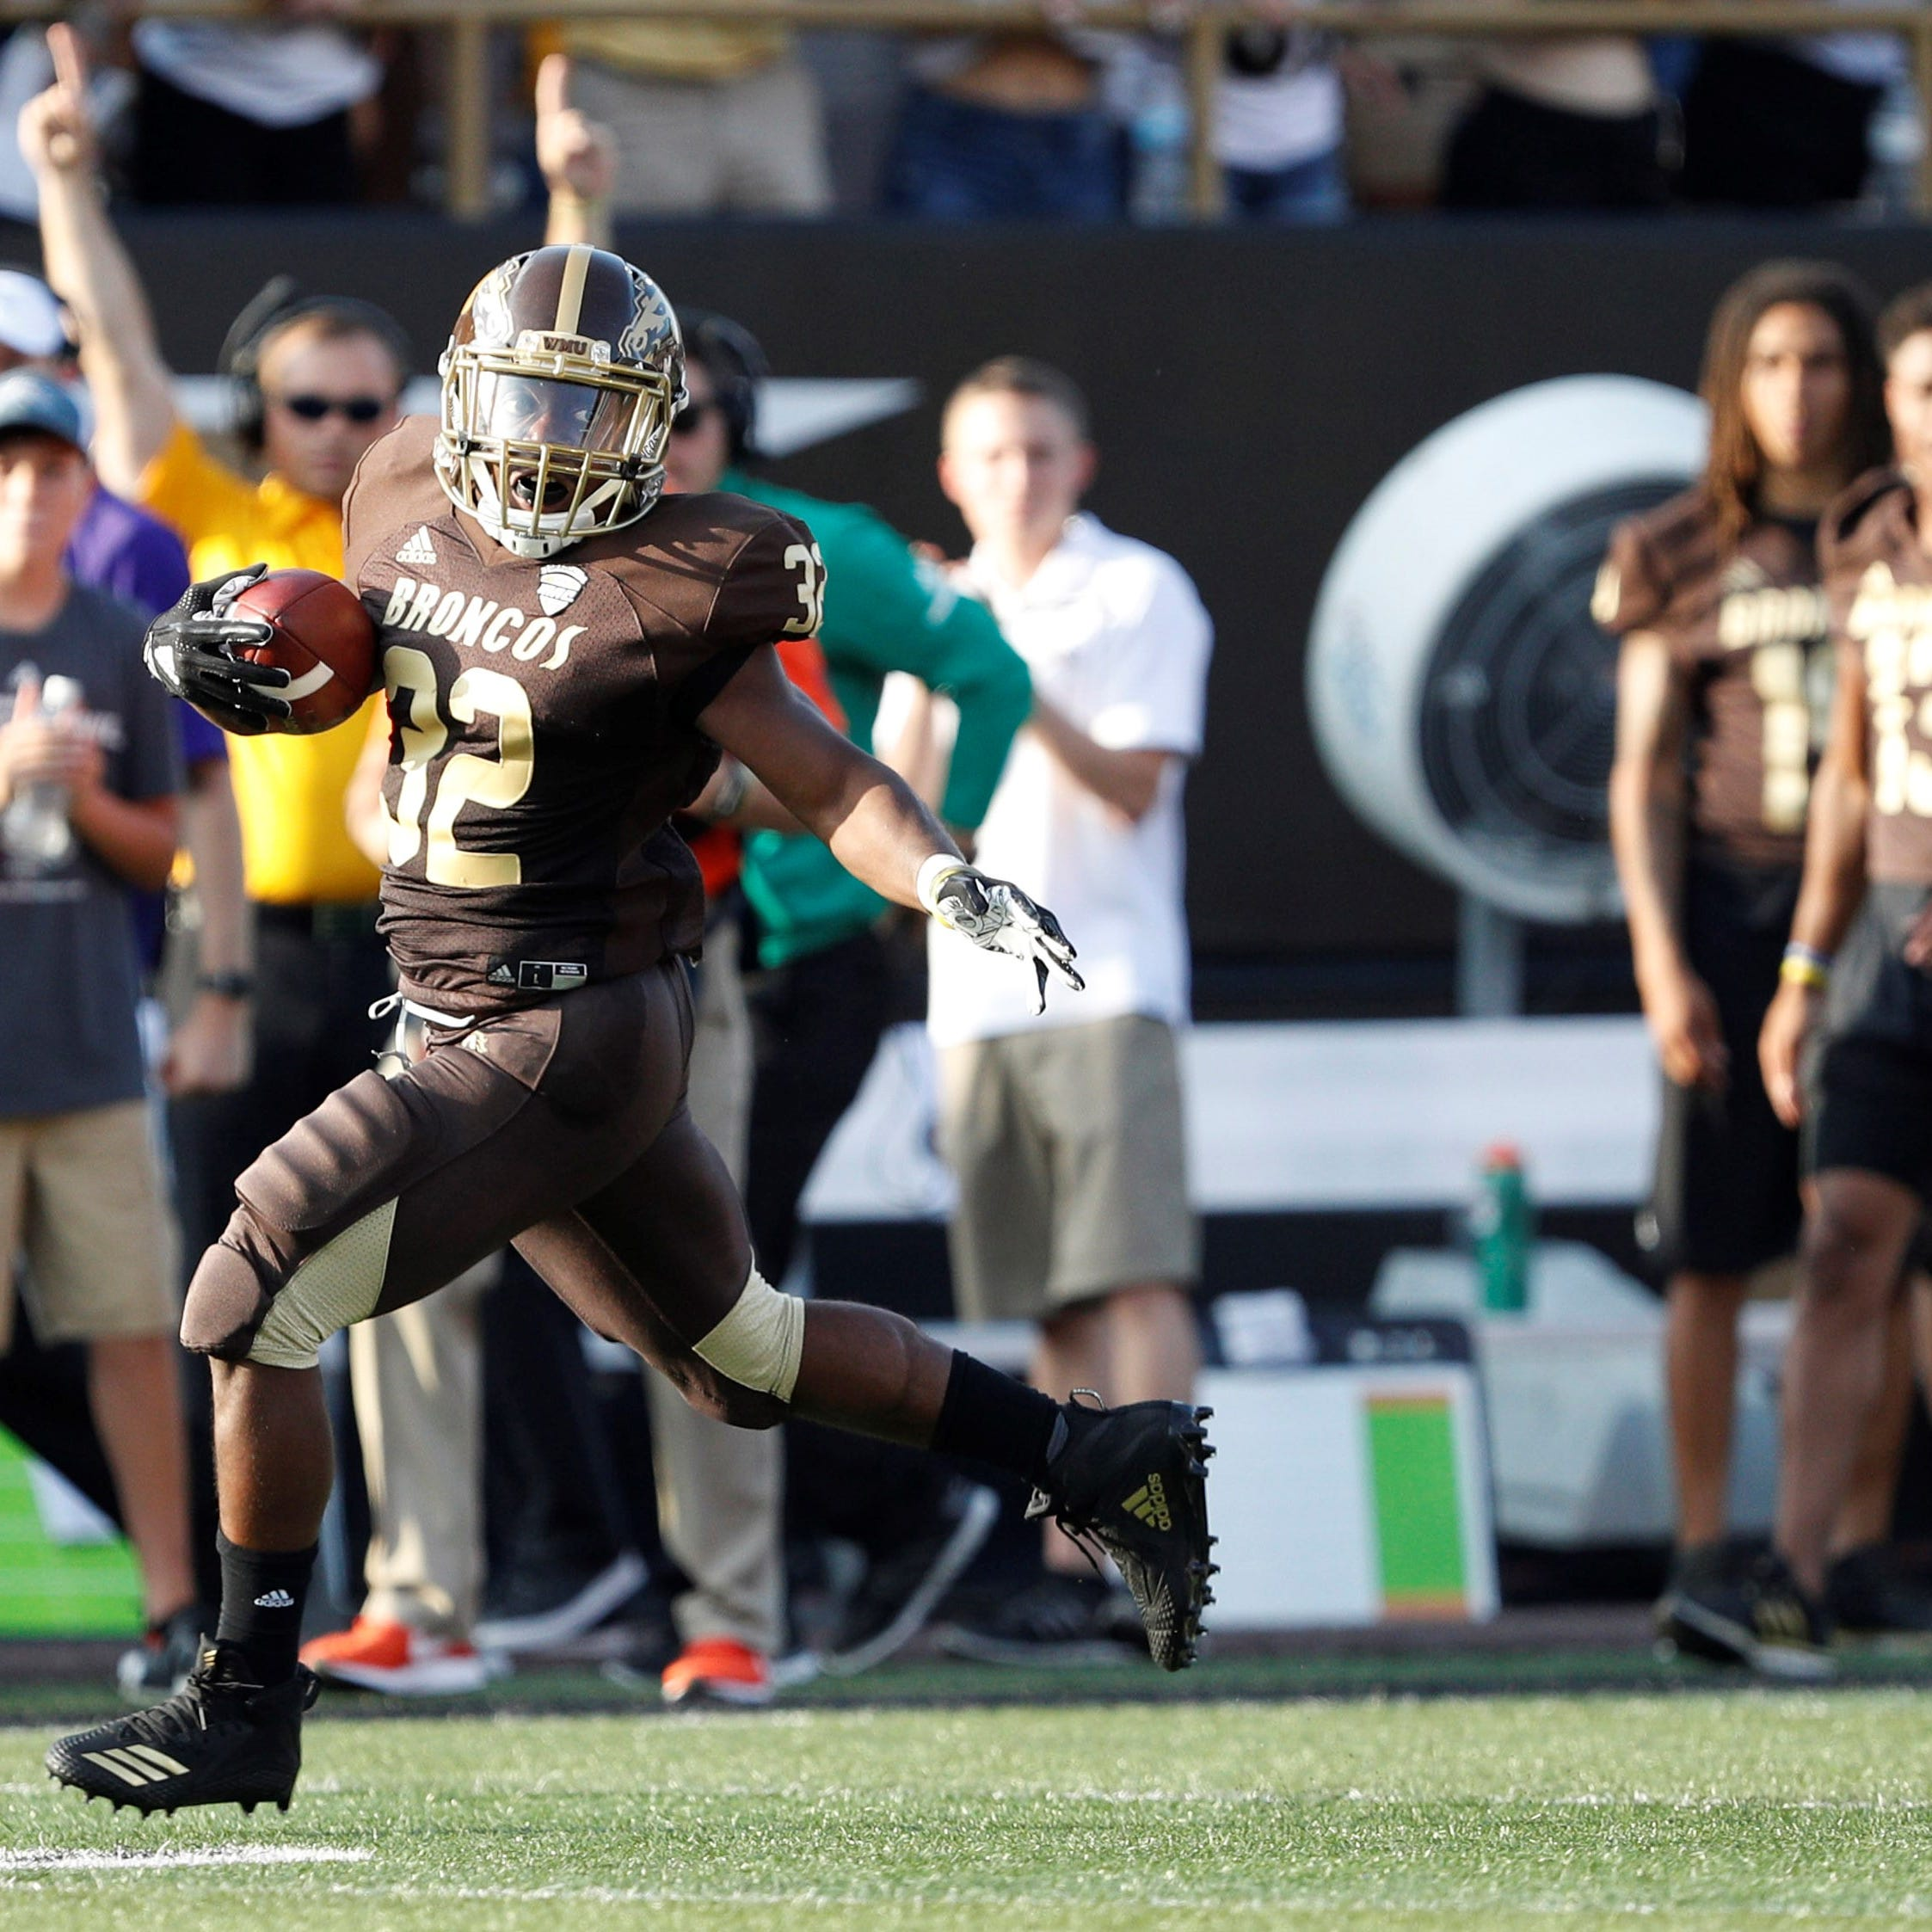 Western Michigan football: Jamauri Bogan's 4 TDs help Broncos stay unbeaten in MAC